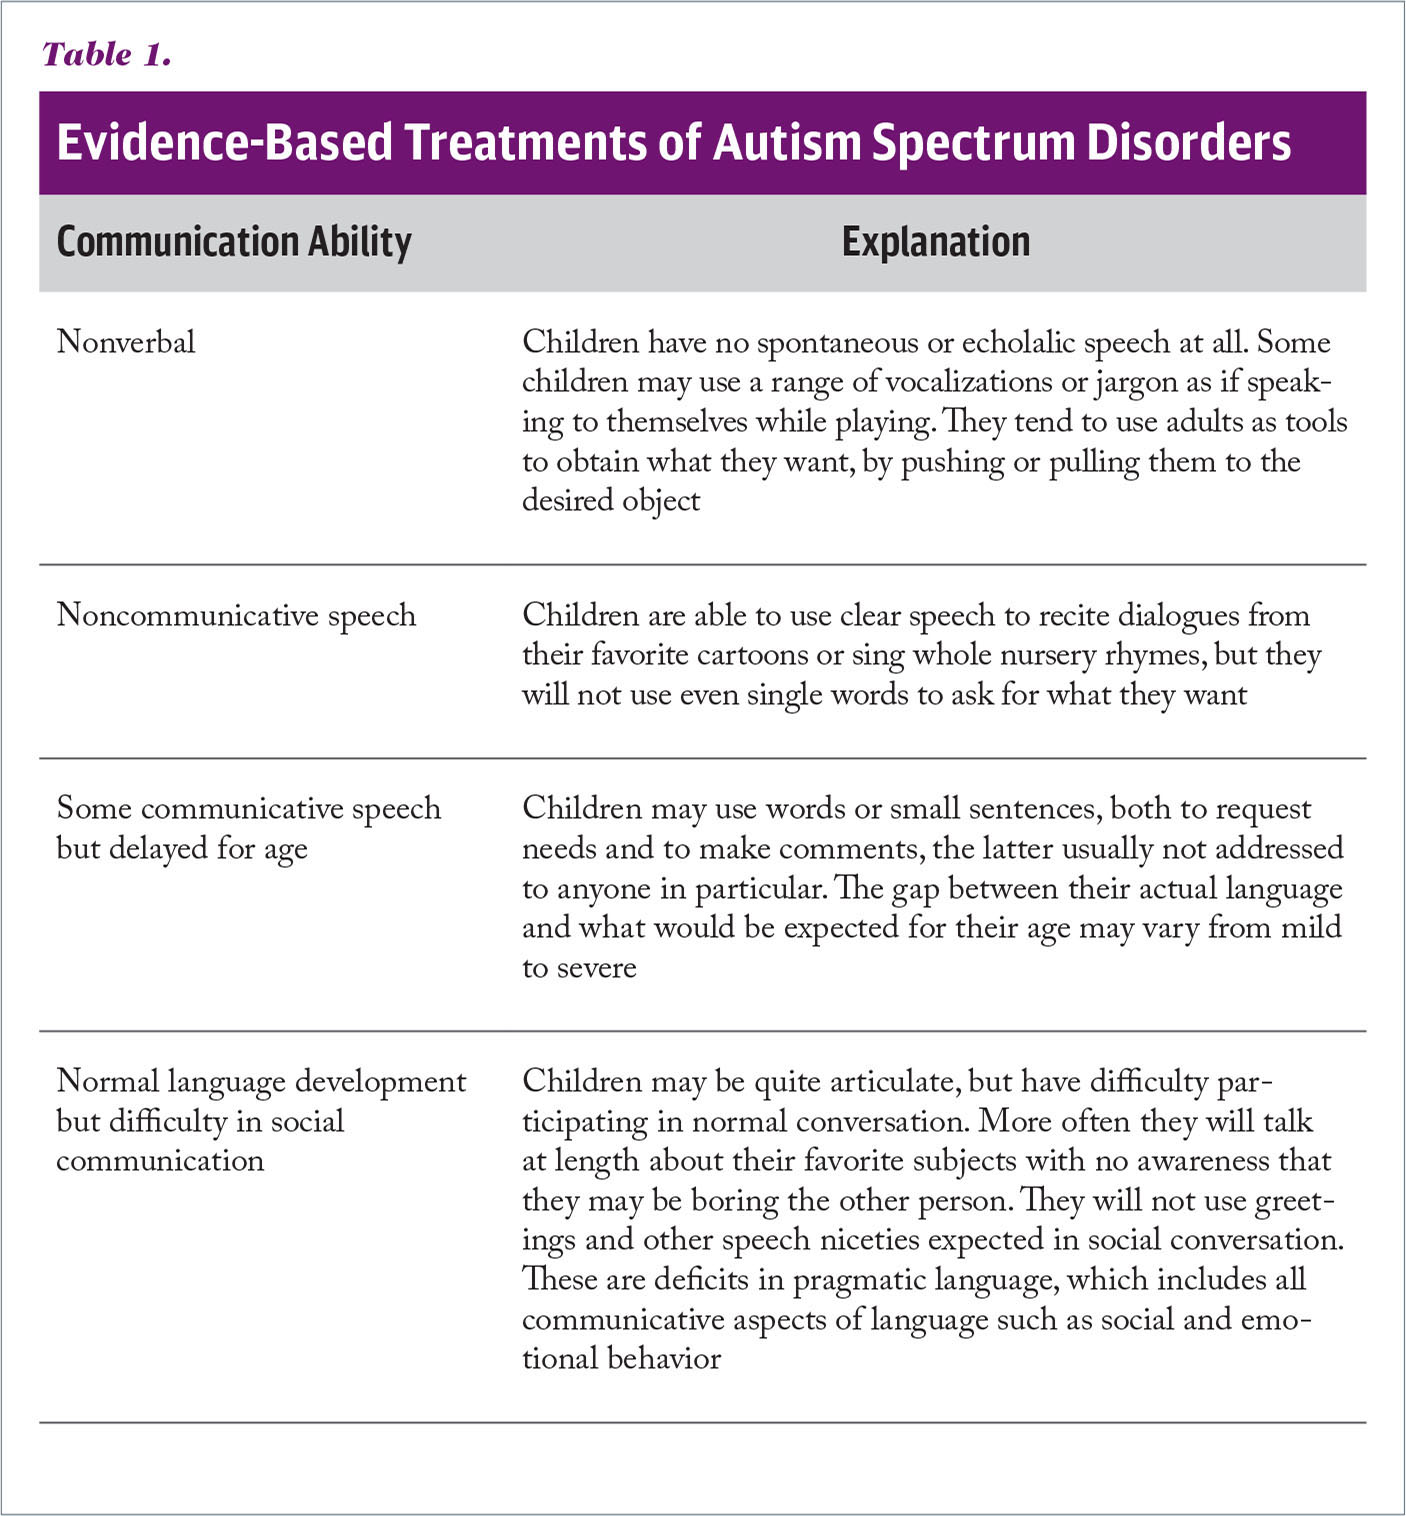 Evidence-Based Treatments of Autism Spectrum Disorders